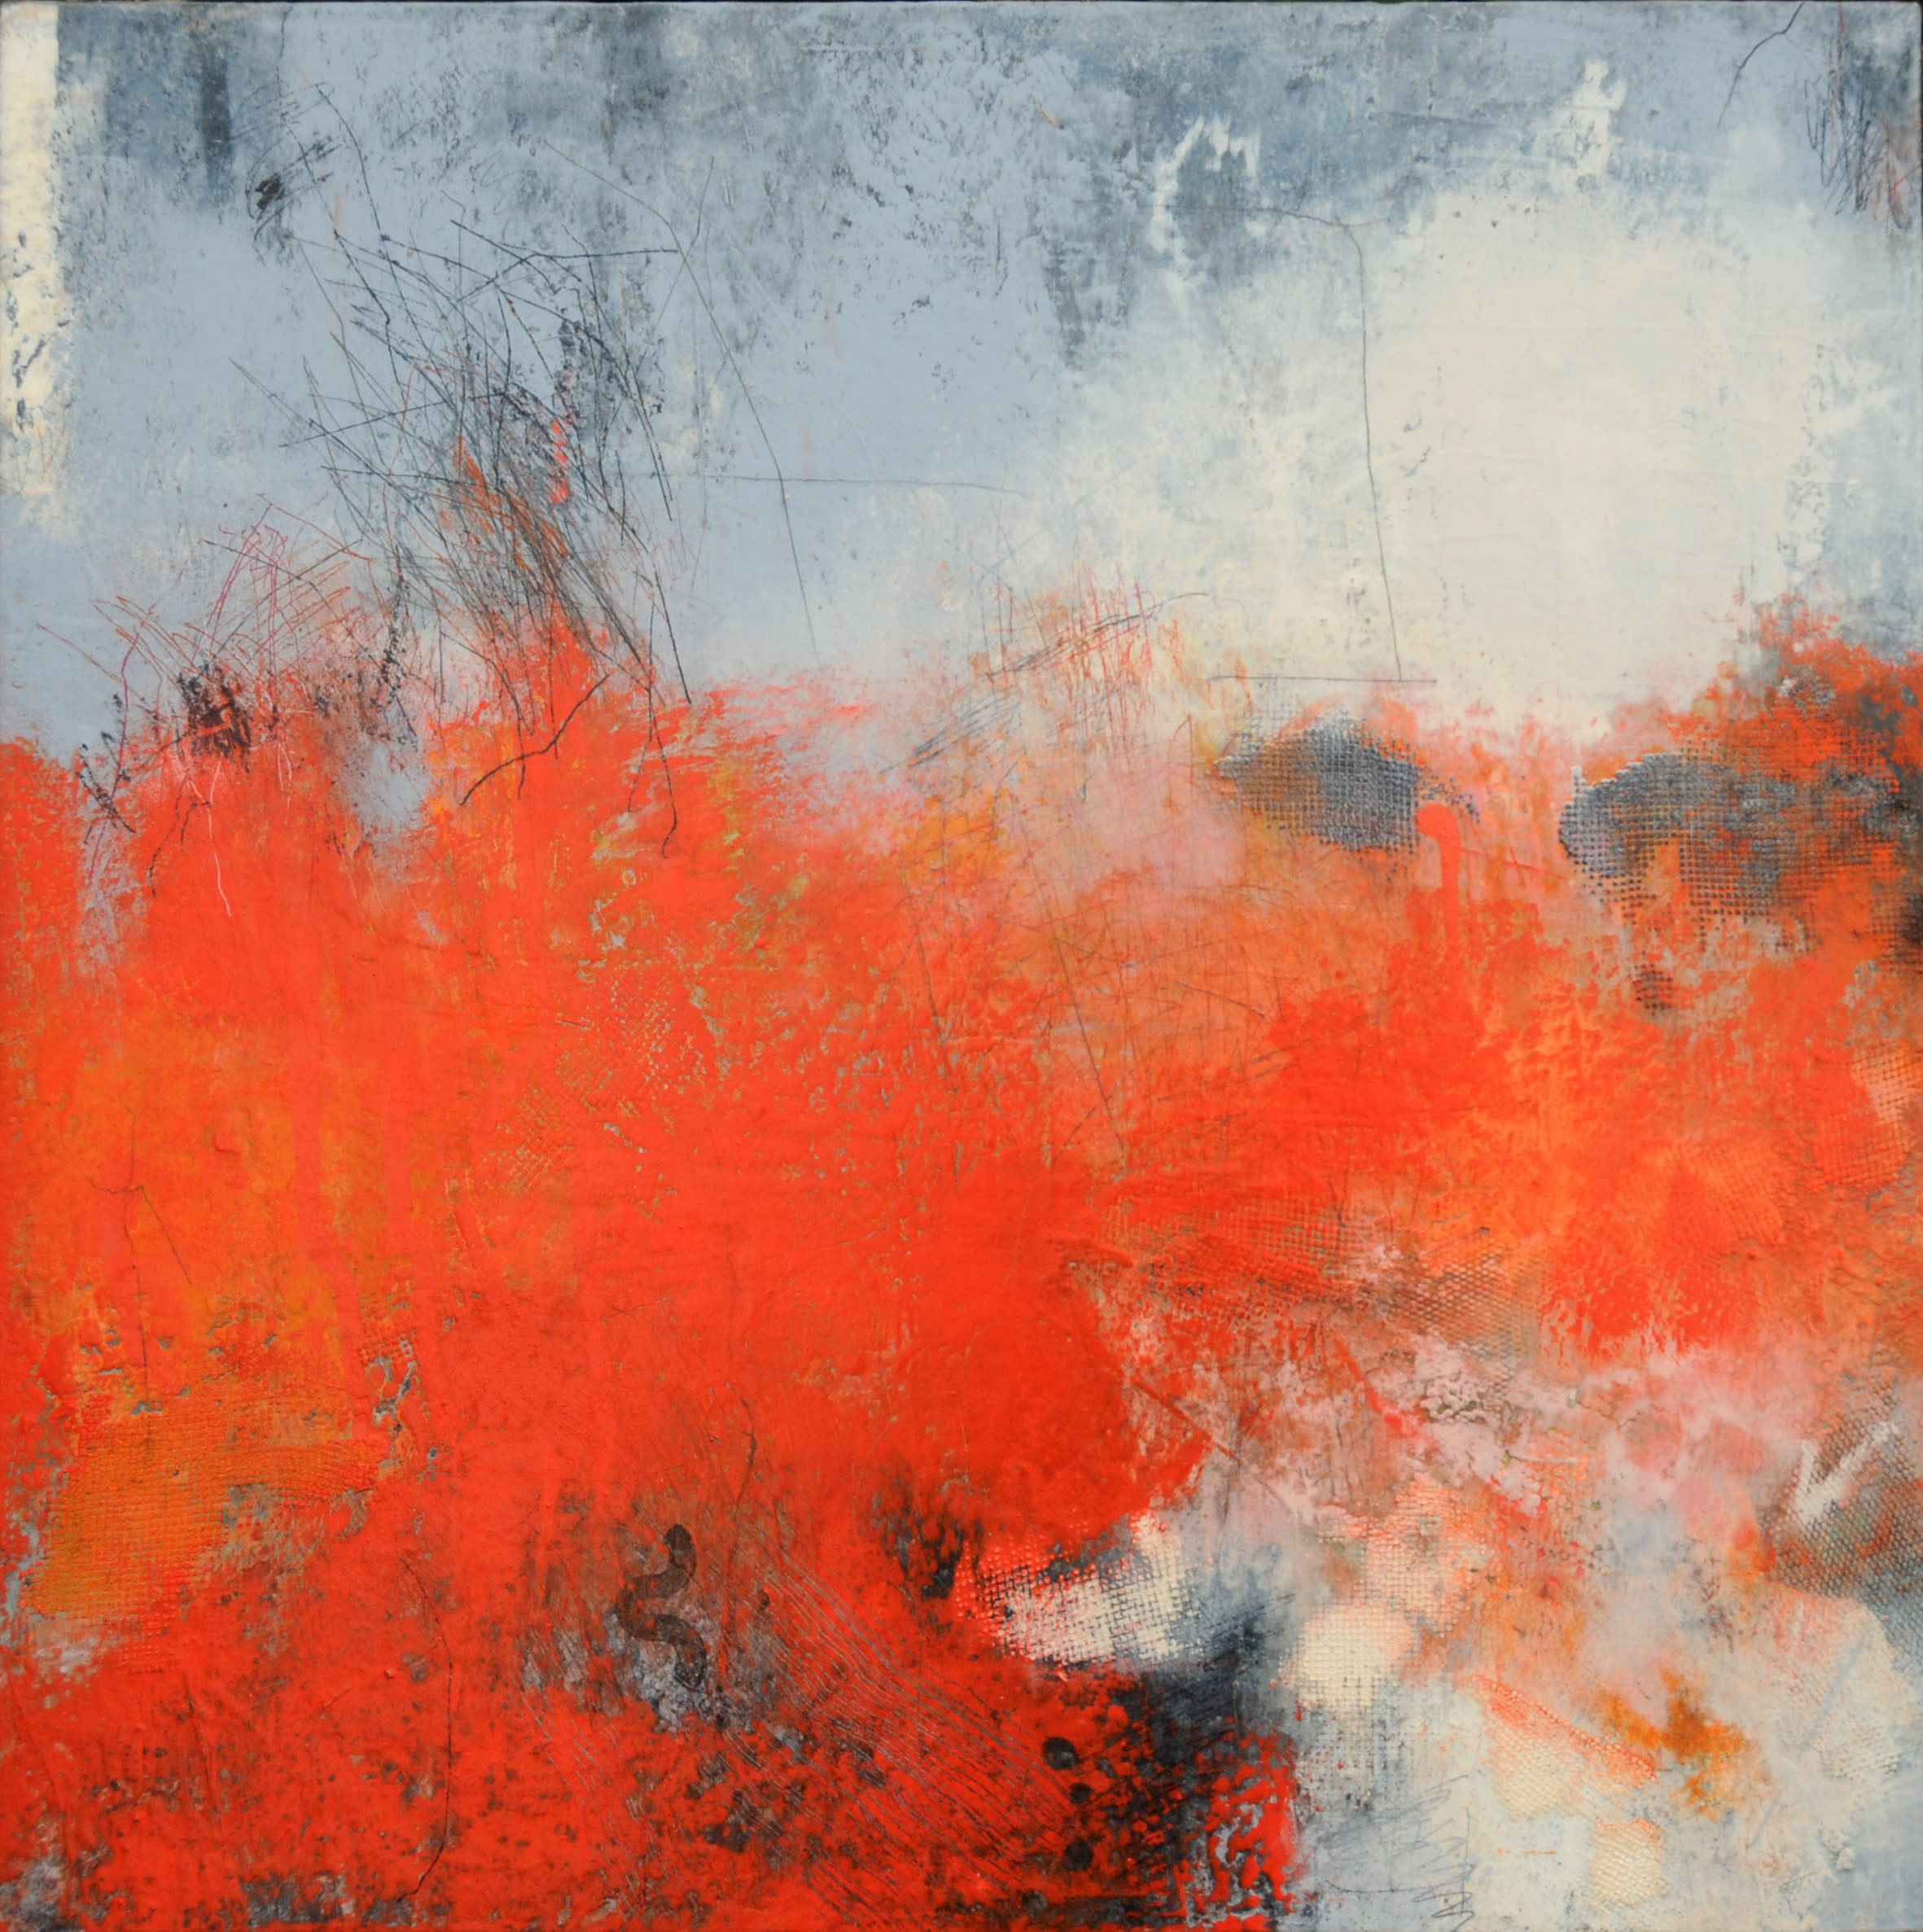 """<span class=""""link fancybox-details-link""""><a href=""""/exhibitions/23/works/artworks_standalone11328/"""">View Detail Page</a></span><div class=""""artist""""><span class=""""artist""""><strong>Bren Unwin PPRE Hon RWS</strong></span></div><div class=""""title""""><em>Field of Intent</em></div><div class=""""medium"""">monotype / oil and mixed media on paper</div><div class=""""dimensions"""">40 x 40 cm </div><div class=""""edition_details"""">1/1</div>"""